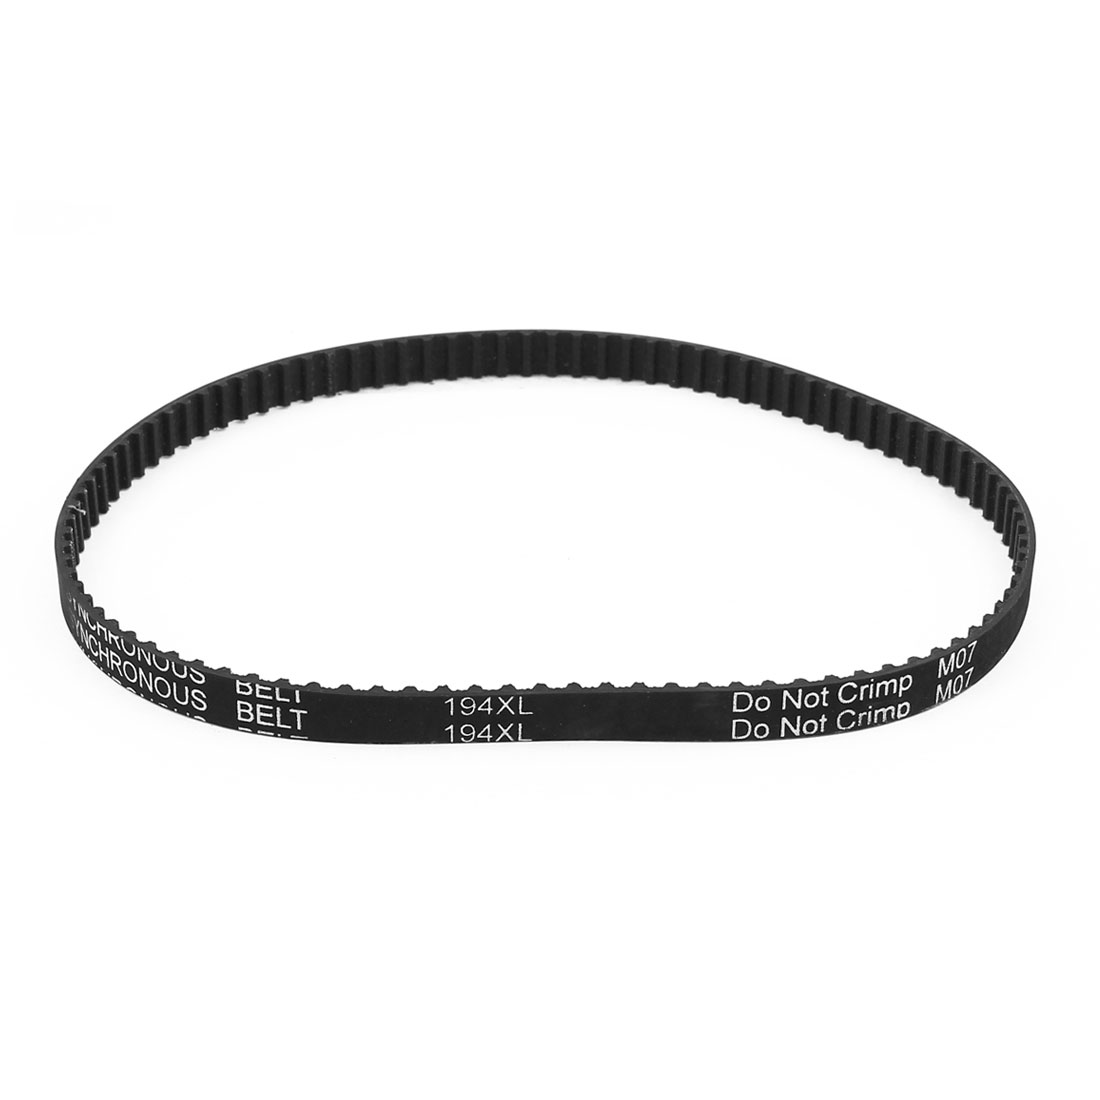 Table Saw Rubber Timing Belt 97 Teeth 9.5mm Width 5.08mm Pitch 194XL 037